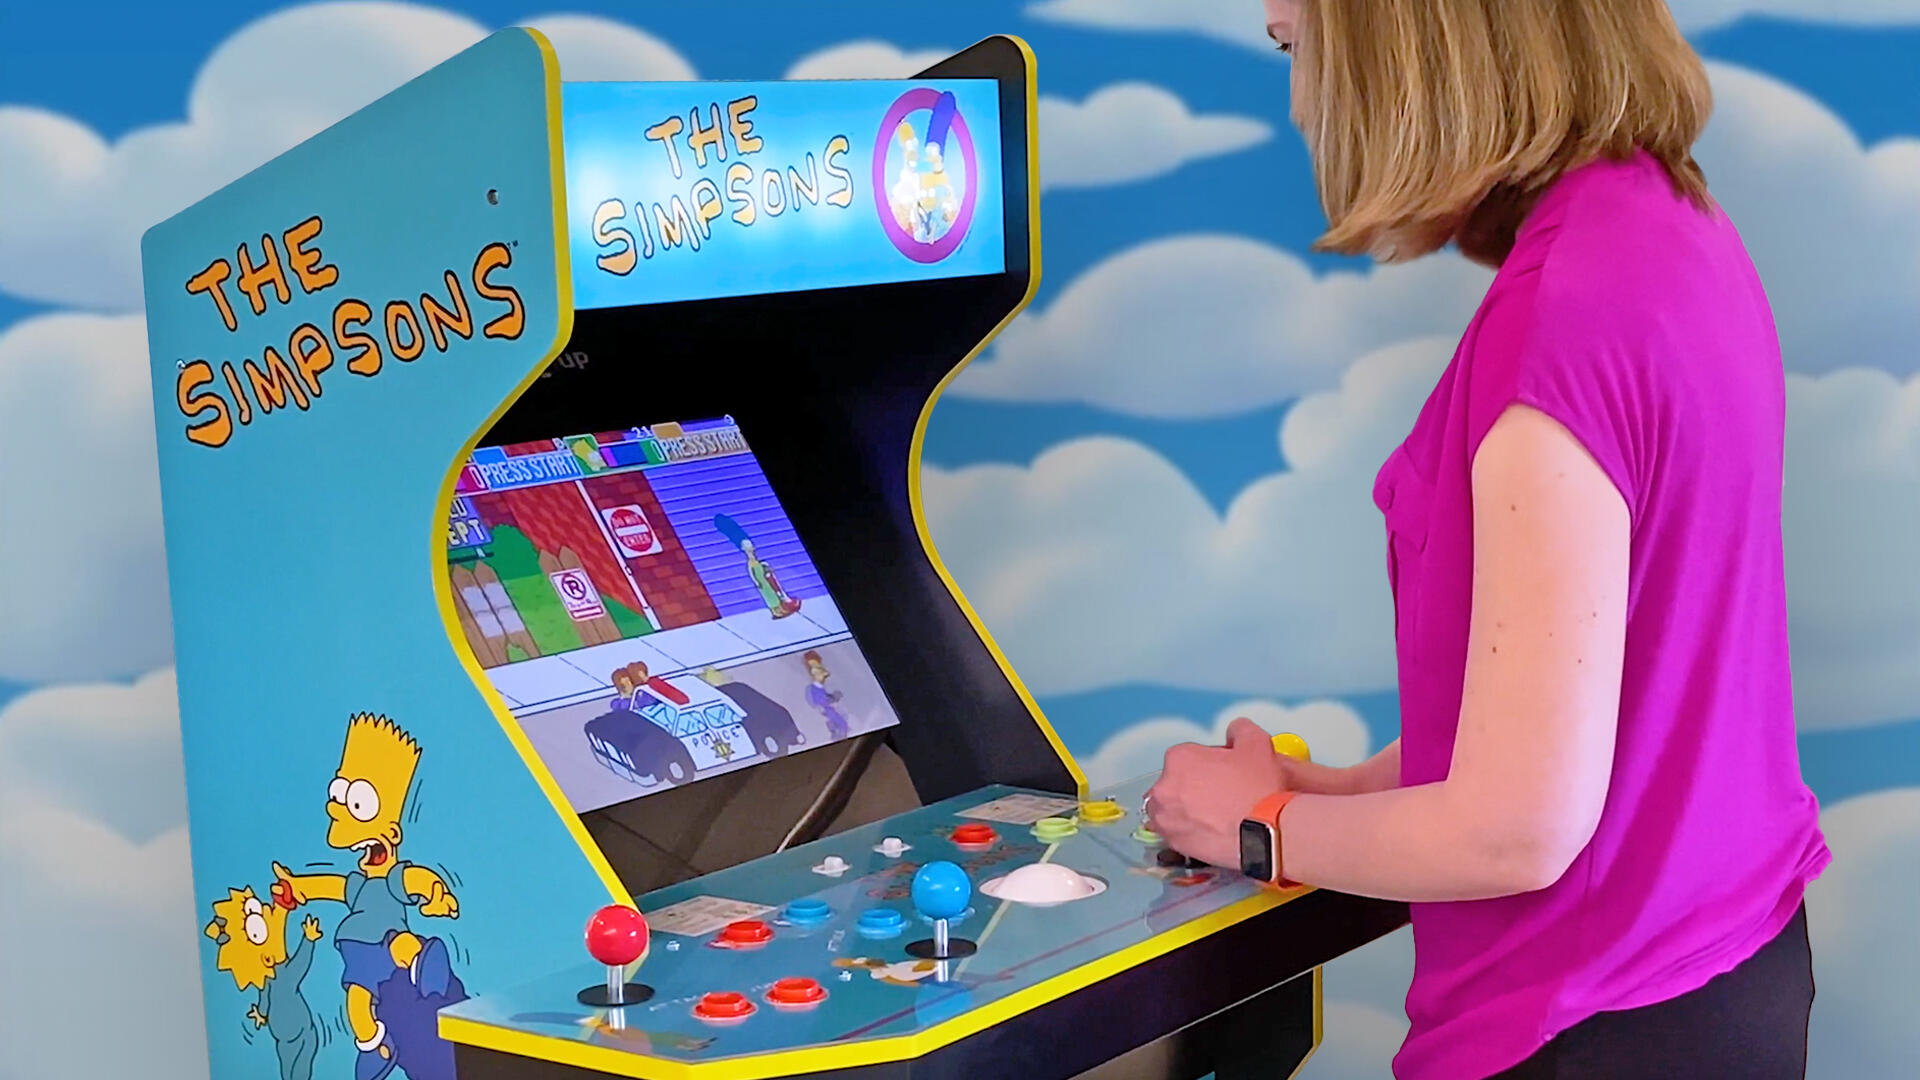 Video: Arcade1Up's Simpsons, X-Men hands on: Playing with 2021's new cabinets